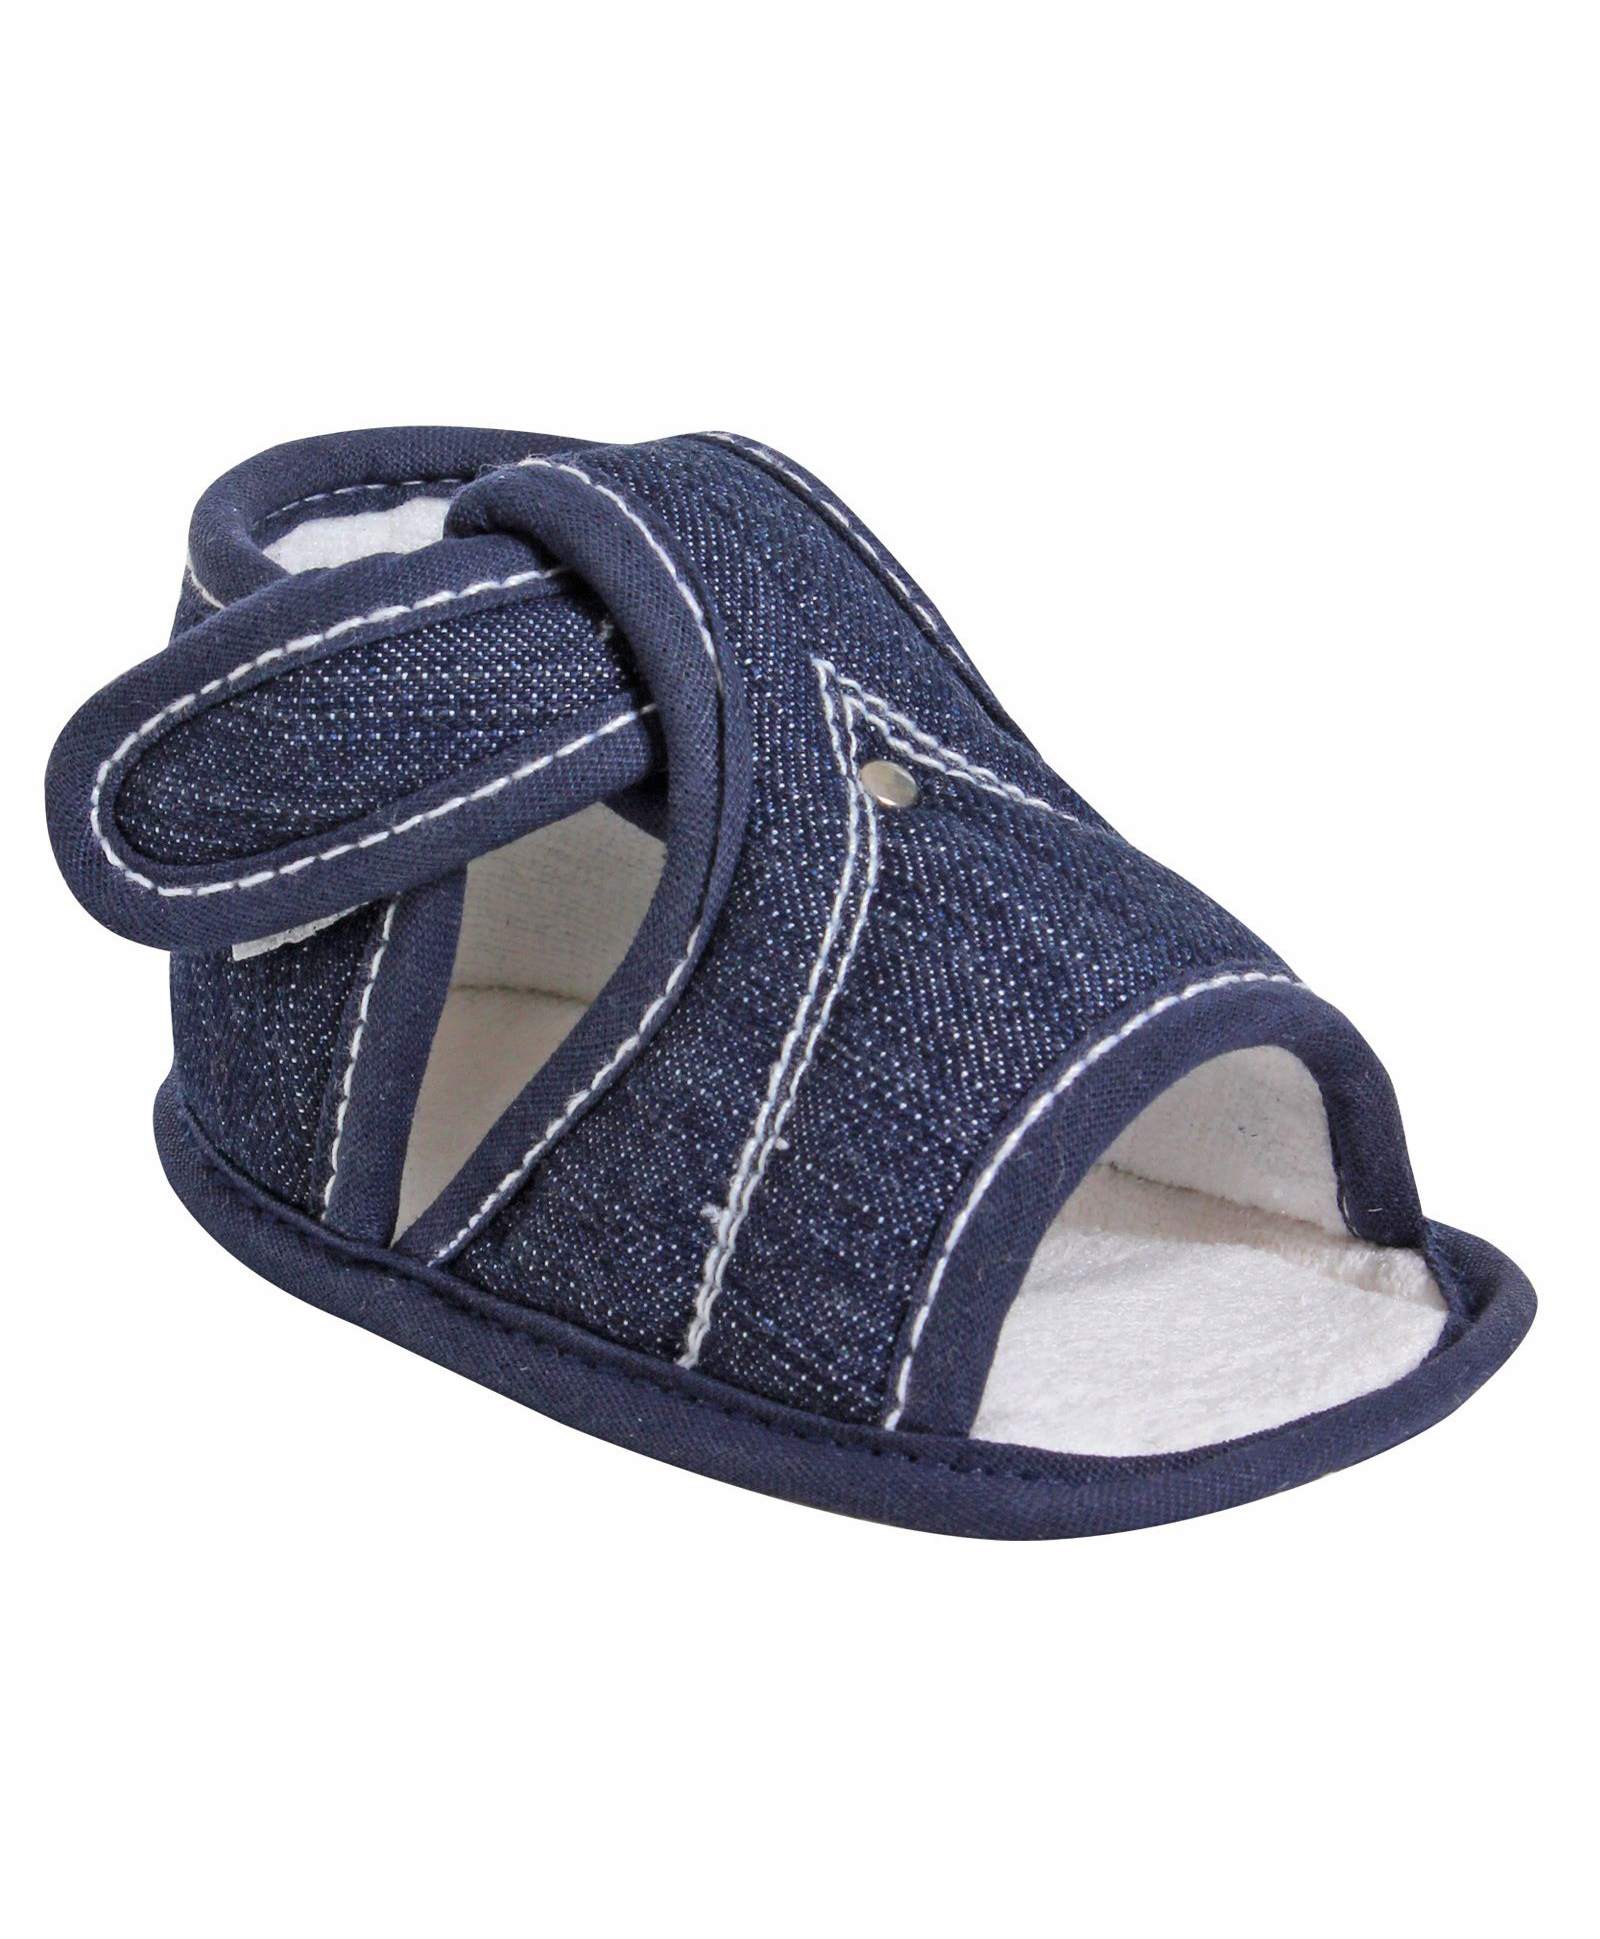 Shoes online. Buy baby shoes online